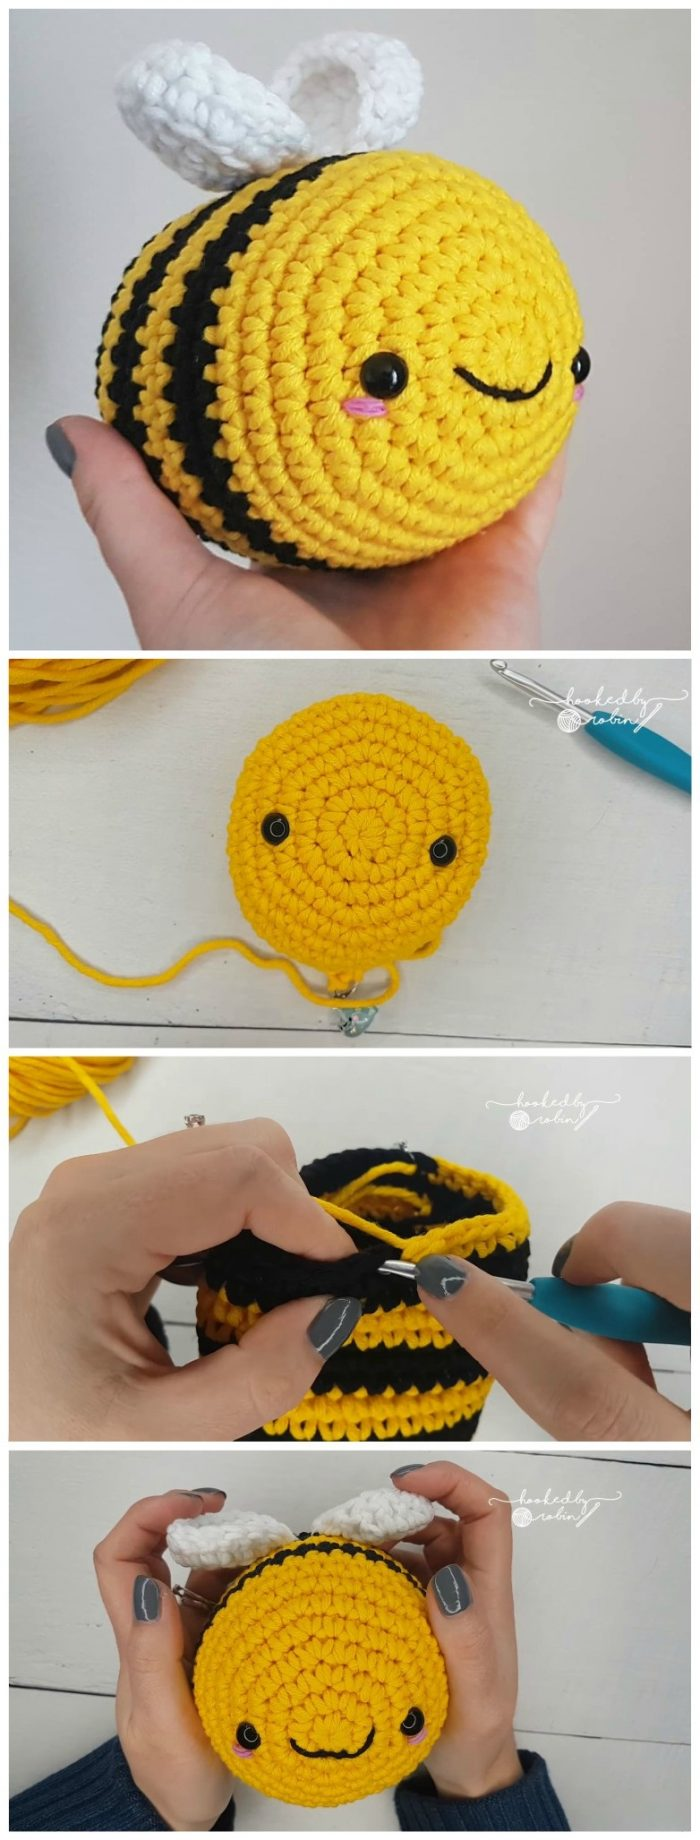 Crochet Bee Pattern | Crochet bee, Beginner crochet projects ... | 1840x700